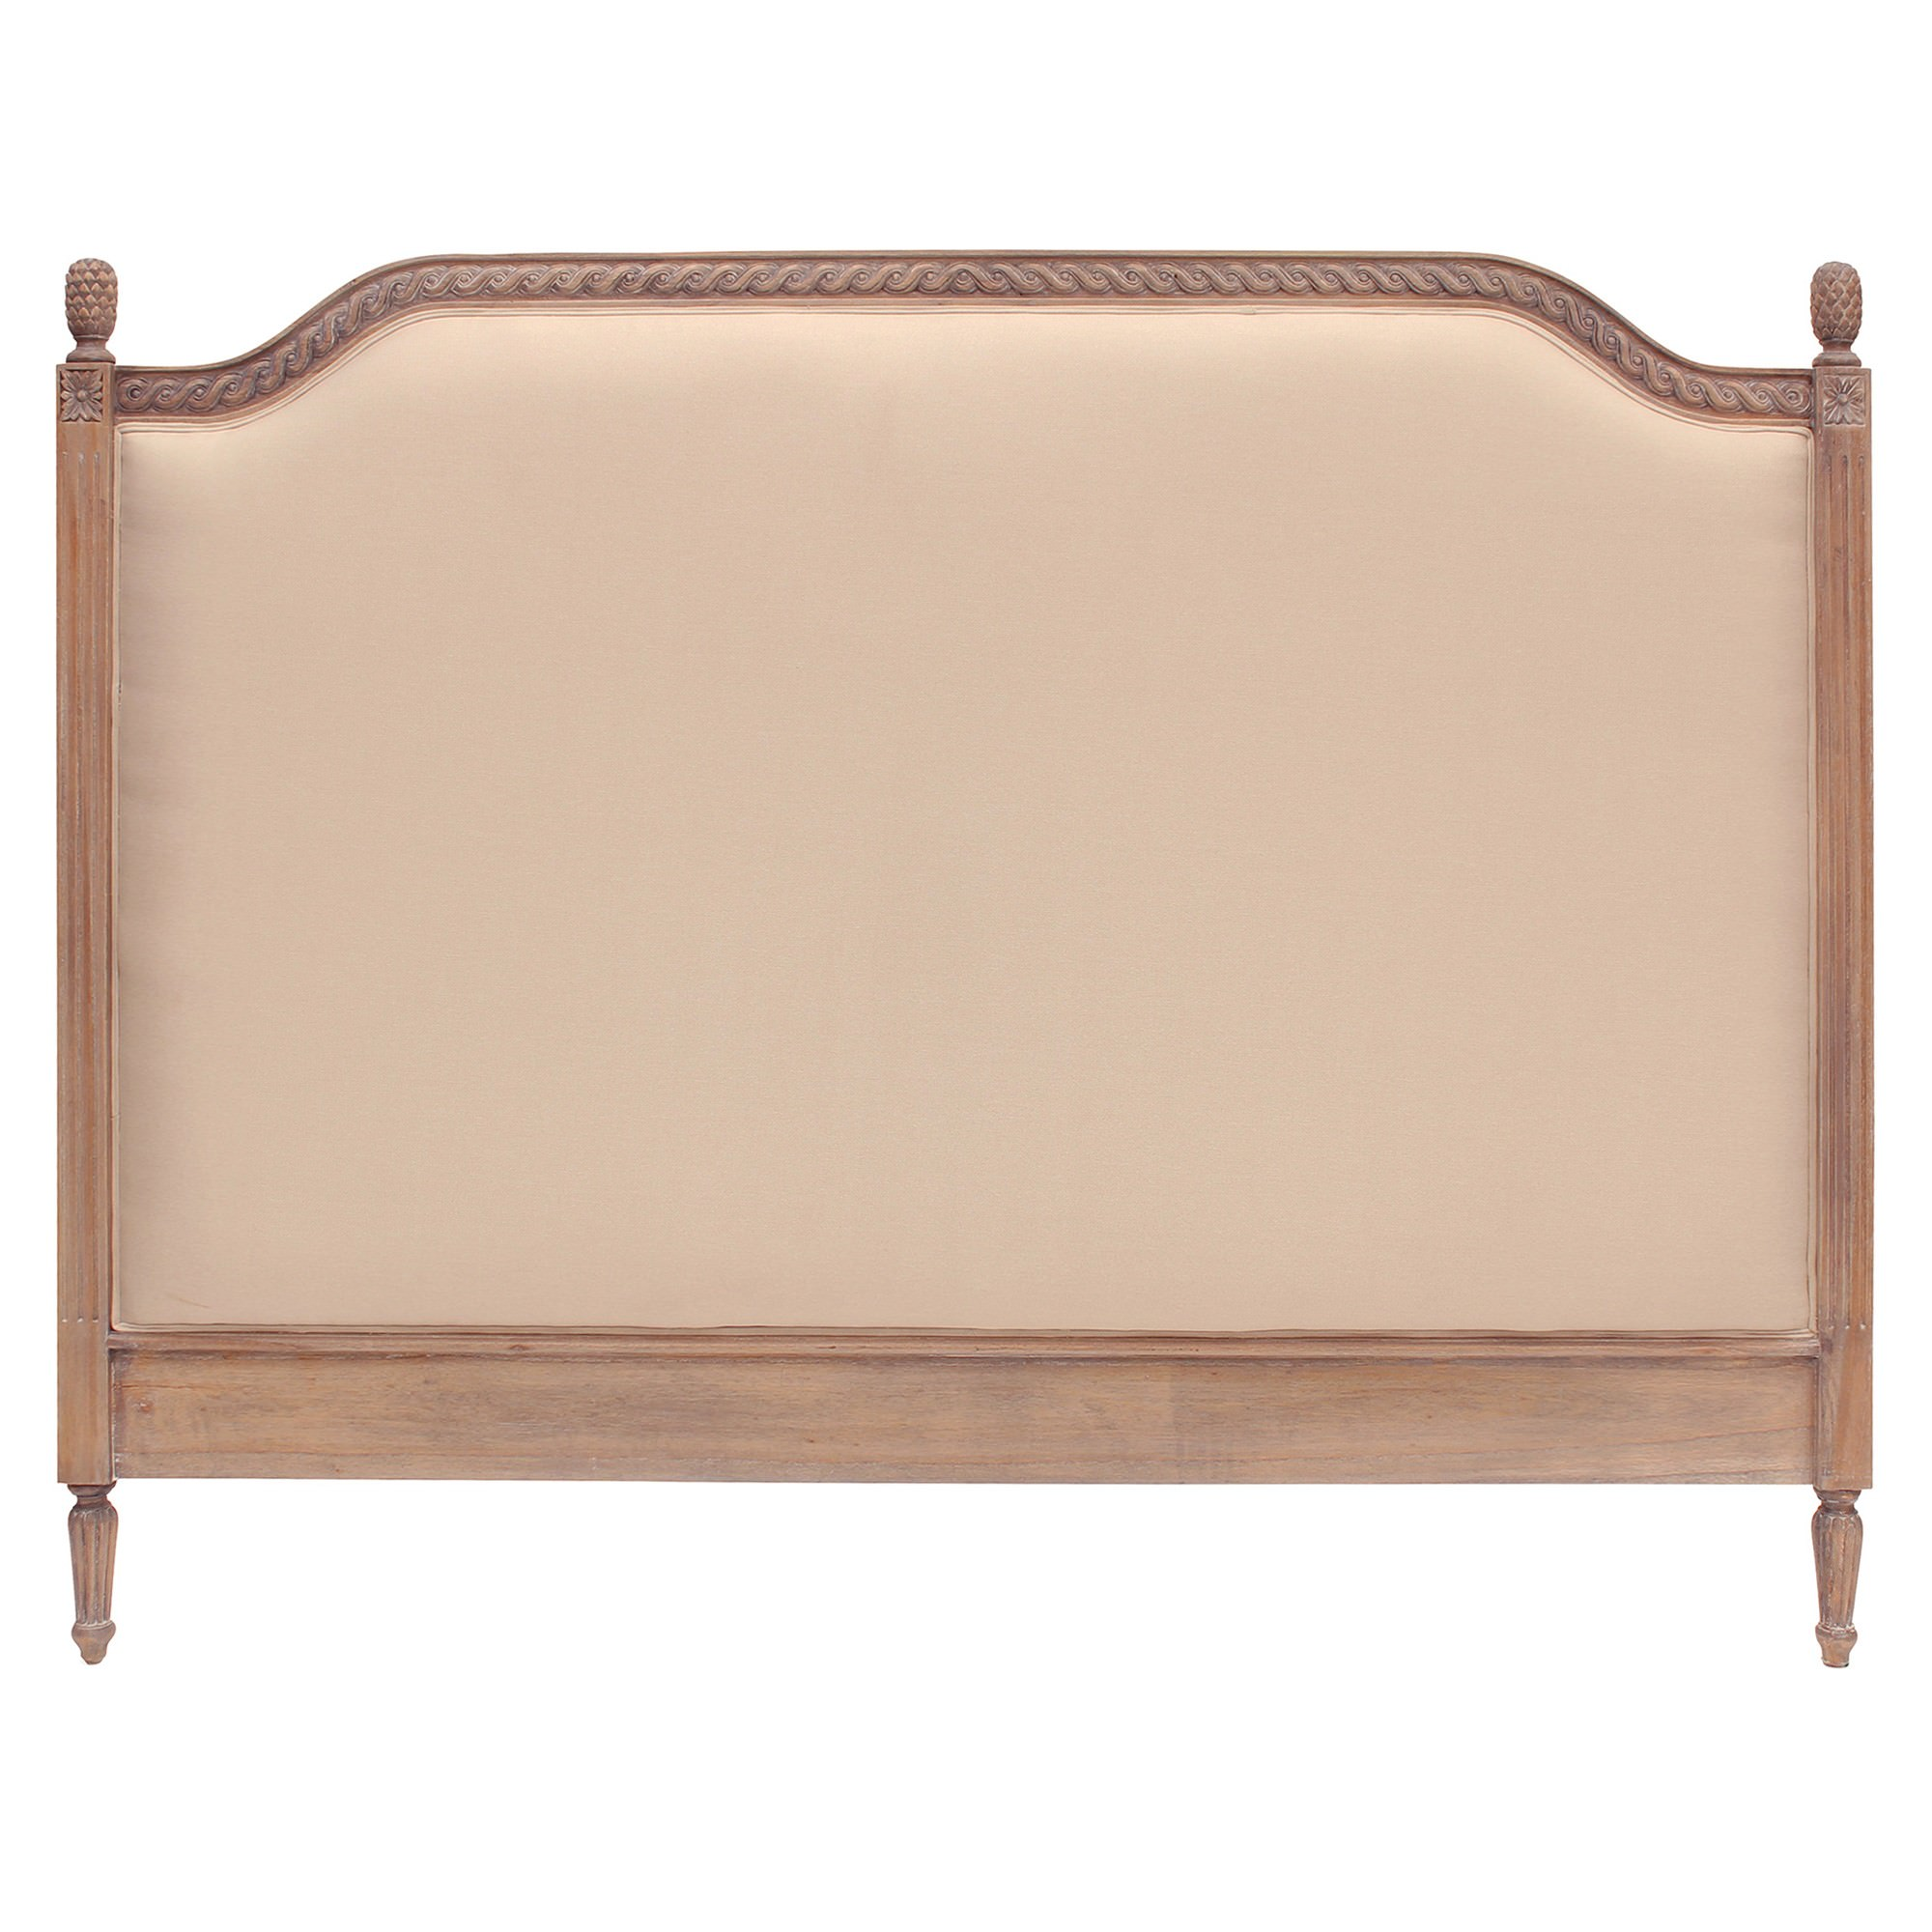 Lapalisse Hand Crafted Upholstered  Mahogany Timber Bed Headboard, Queen, Weathered Oak